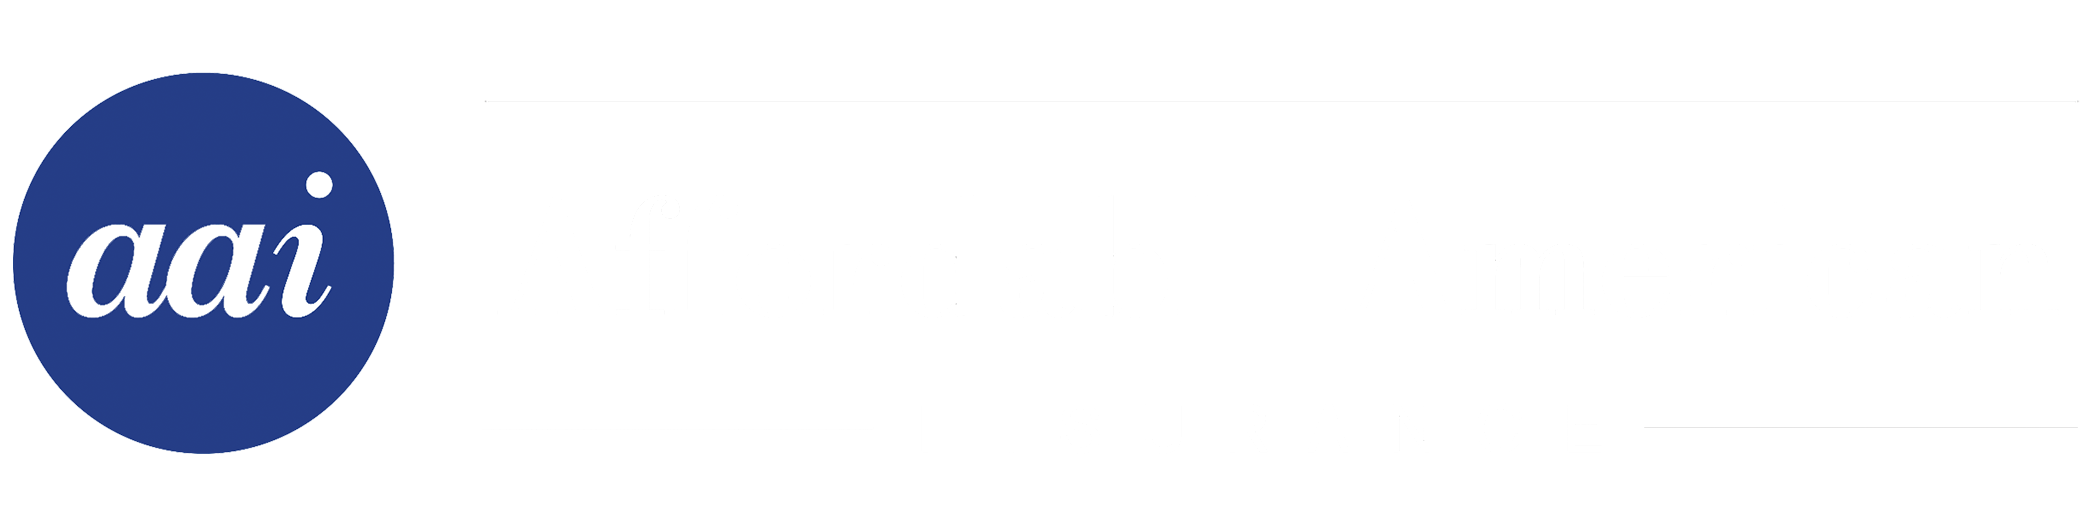 Affordable American Insurance home